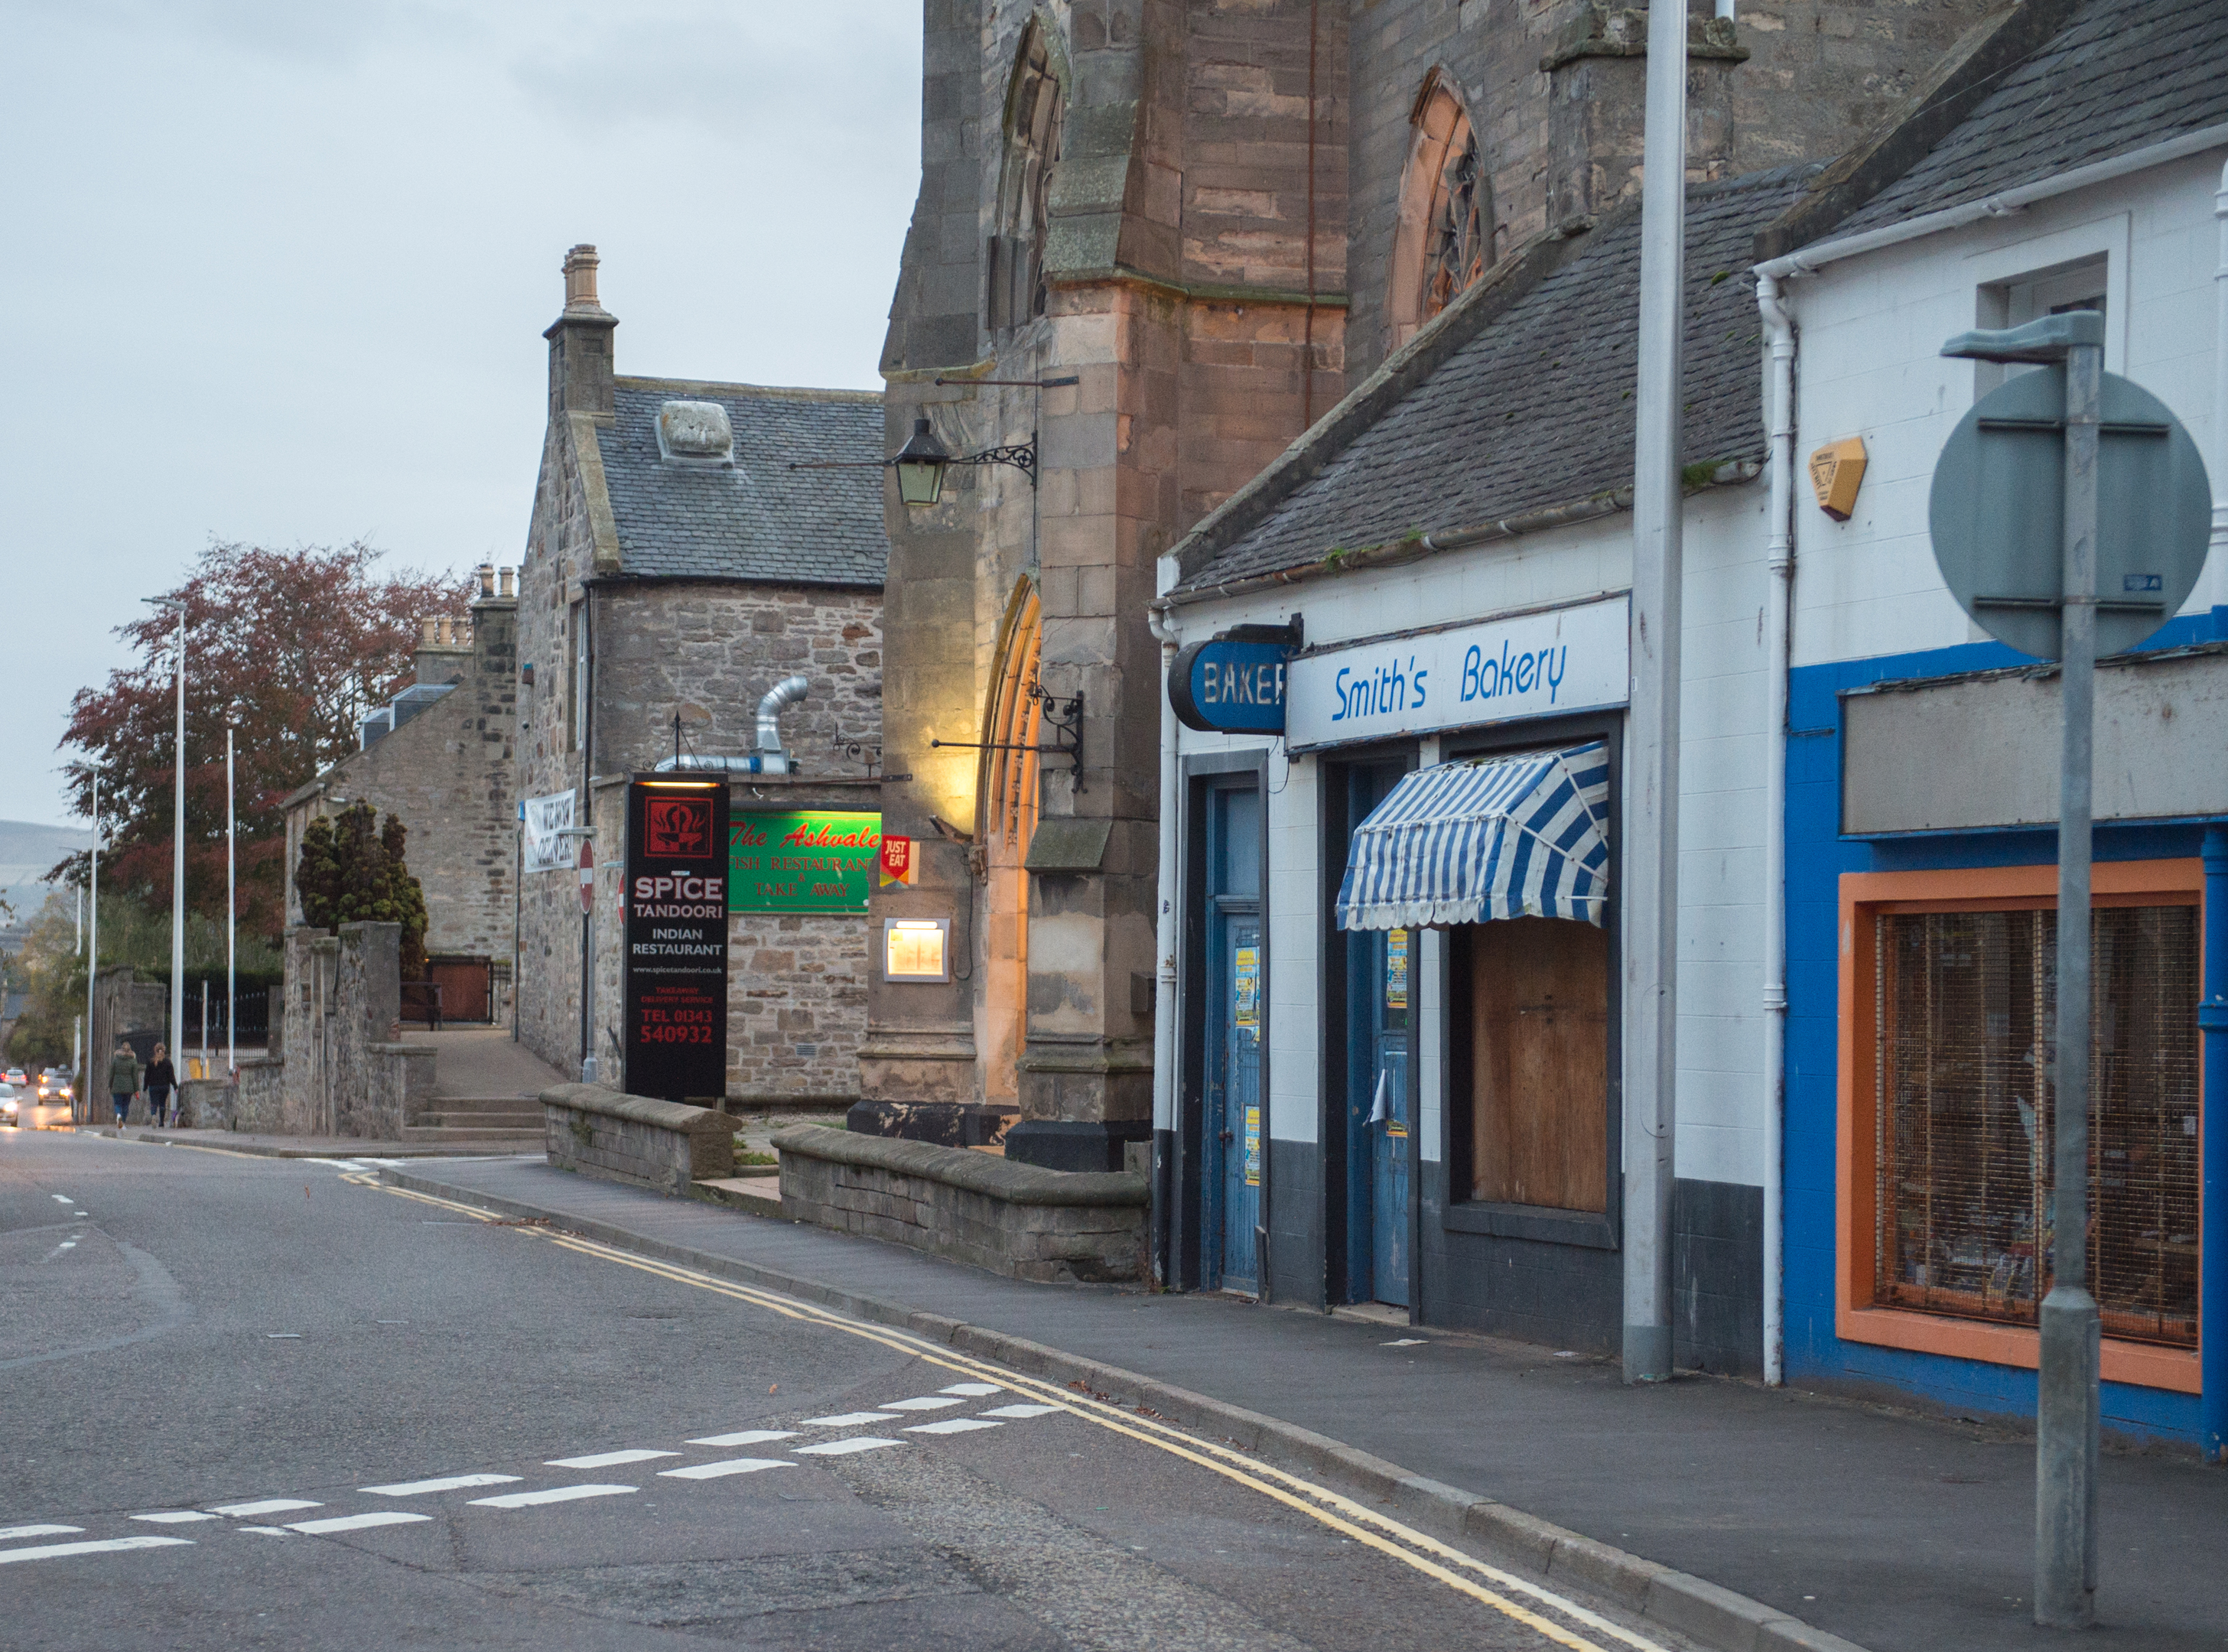 The former bakery could soon find a new use as tourist accommodation.